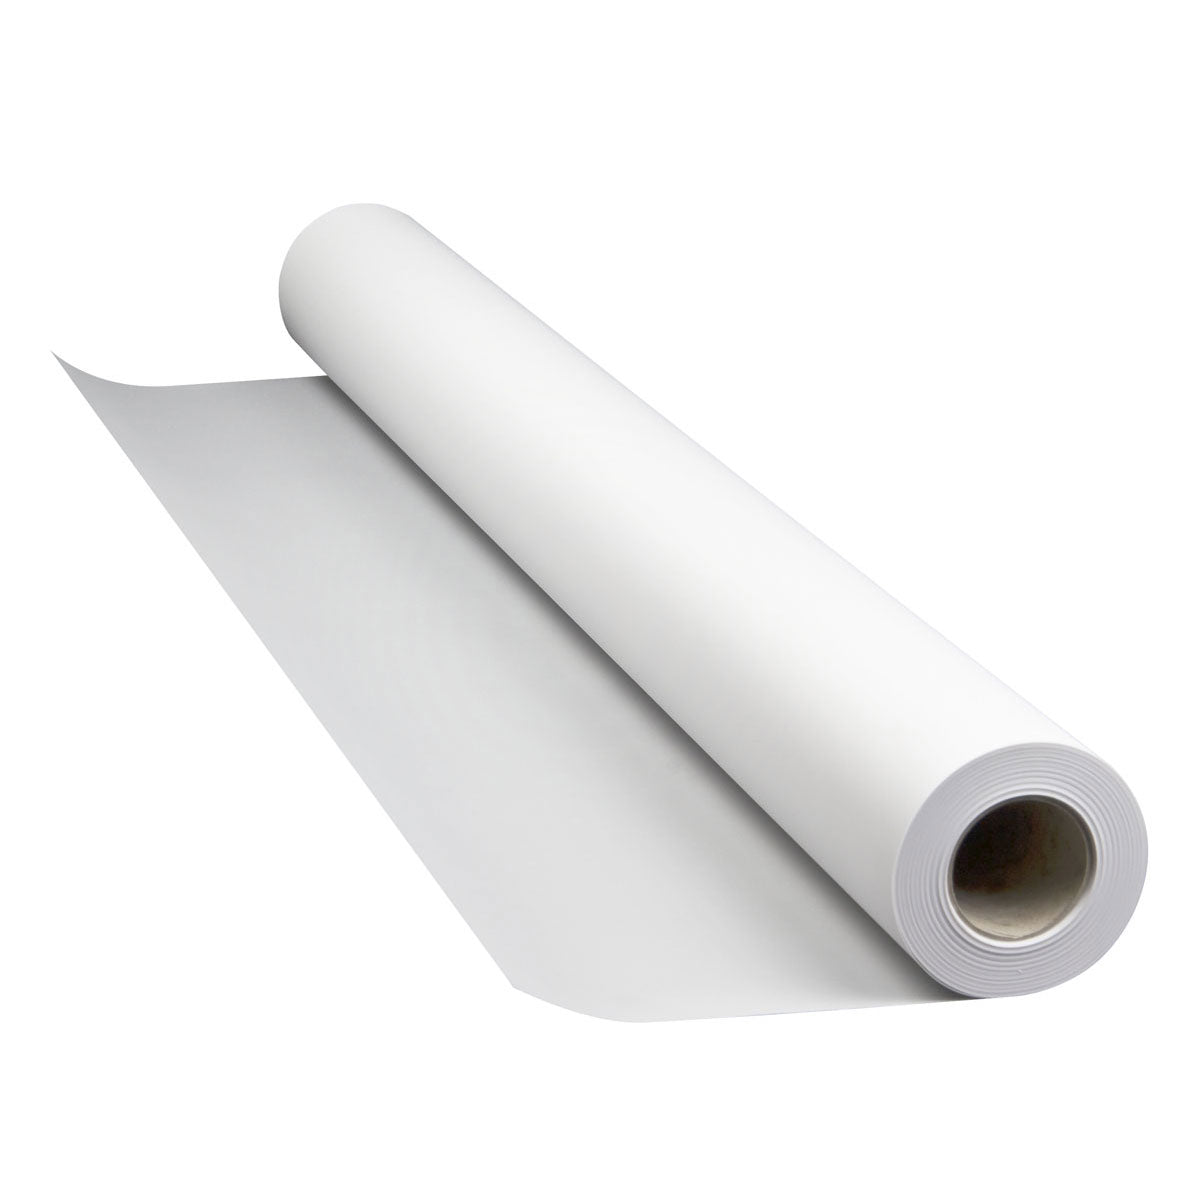 Paper Roll For Waxing Table (Professional)